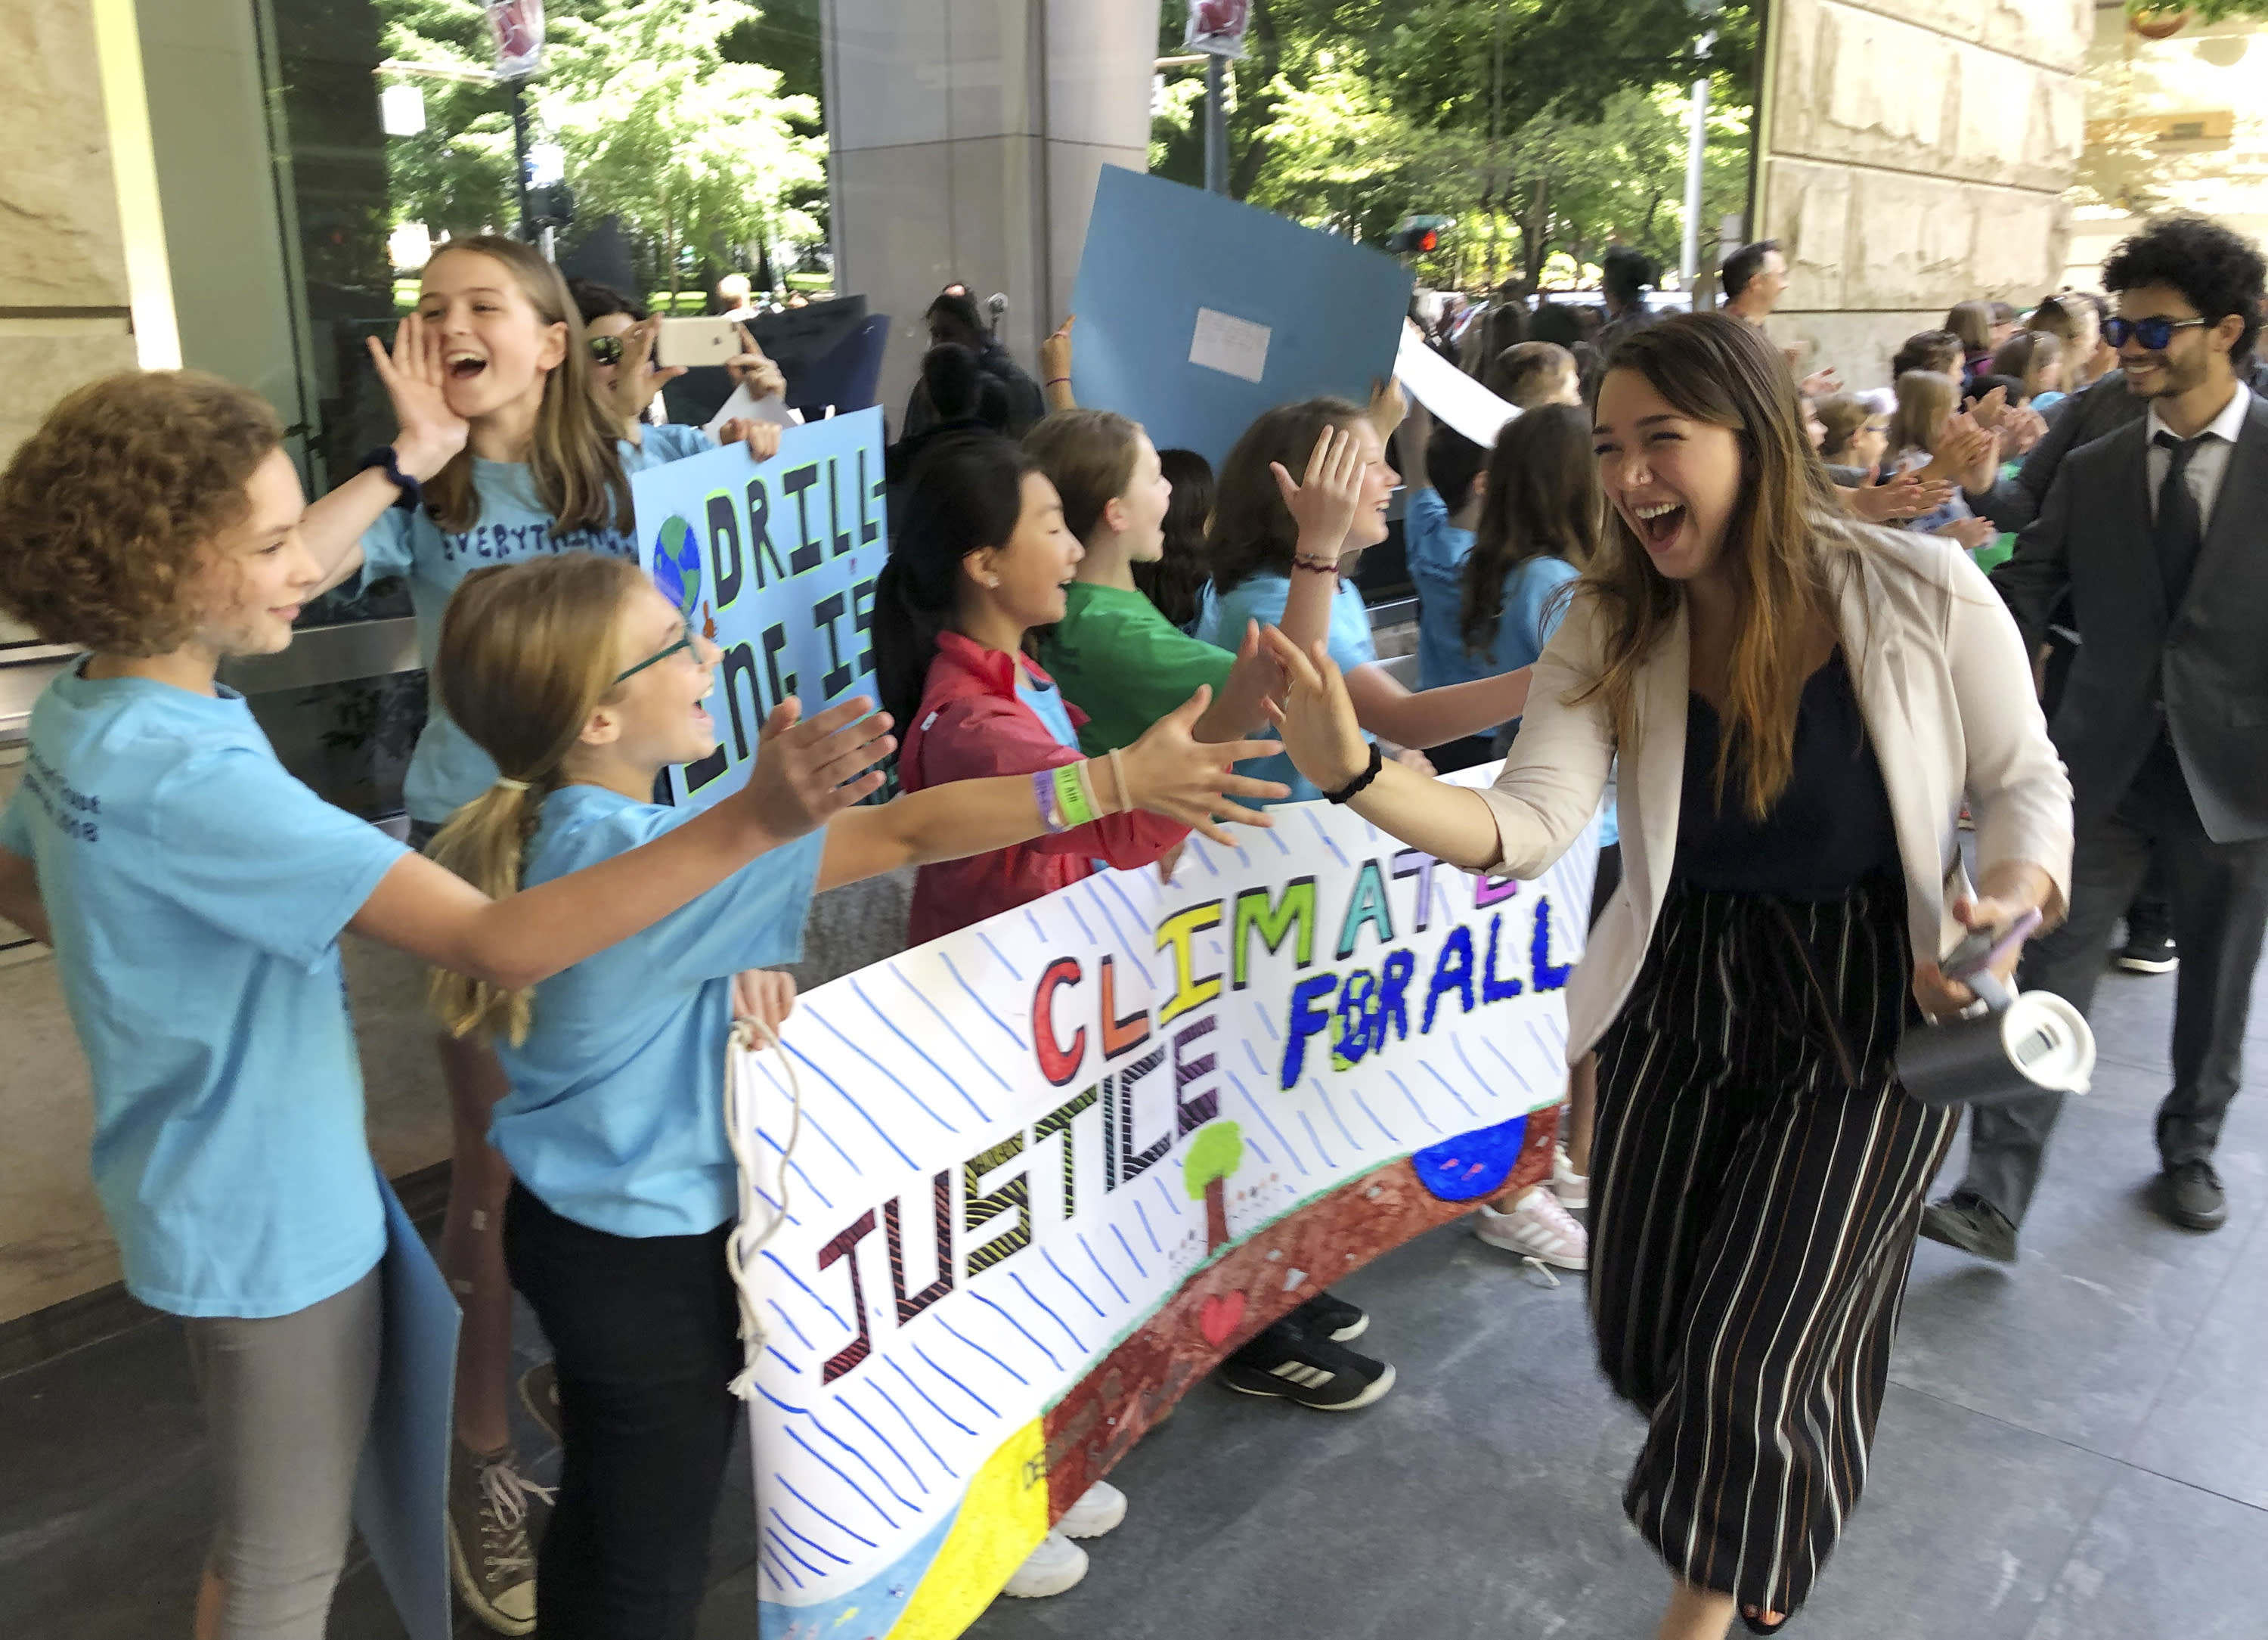 USA court dismisses climate change lawsuit brought by young people